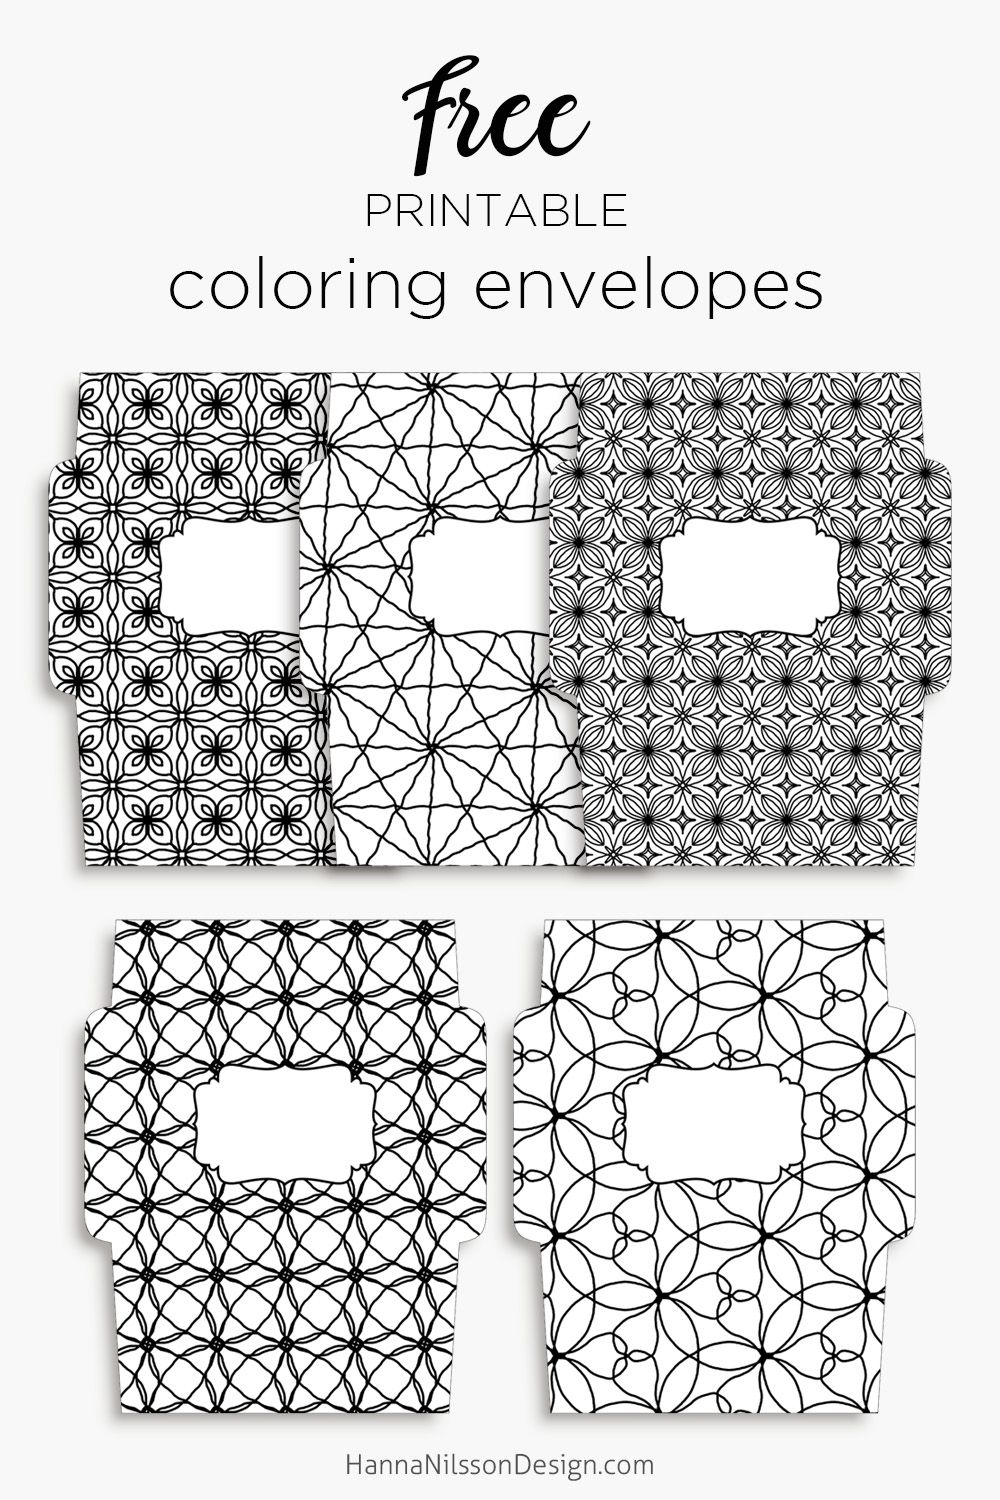 Coloring envelopes - send some colorful Happy mail with these ...